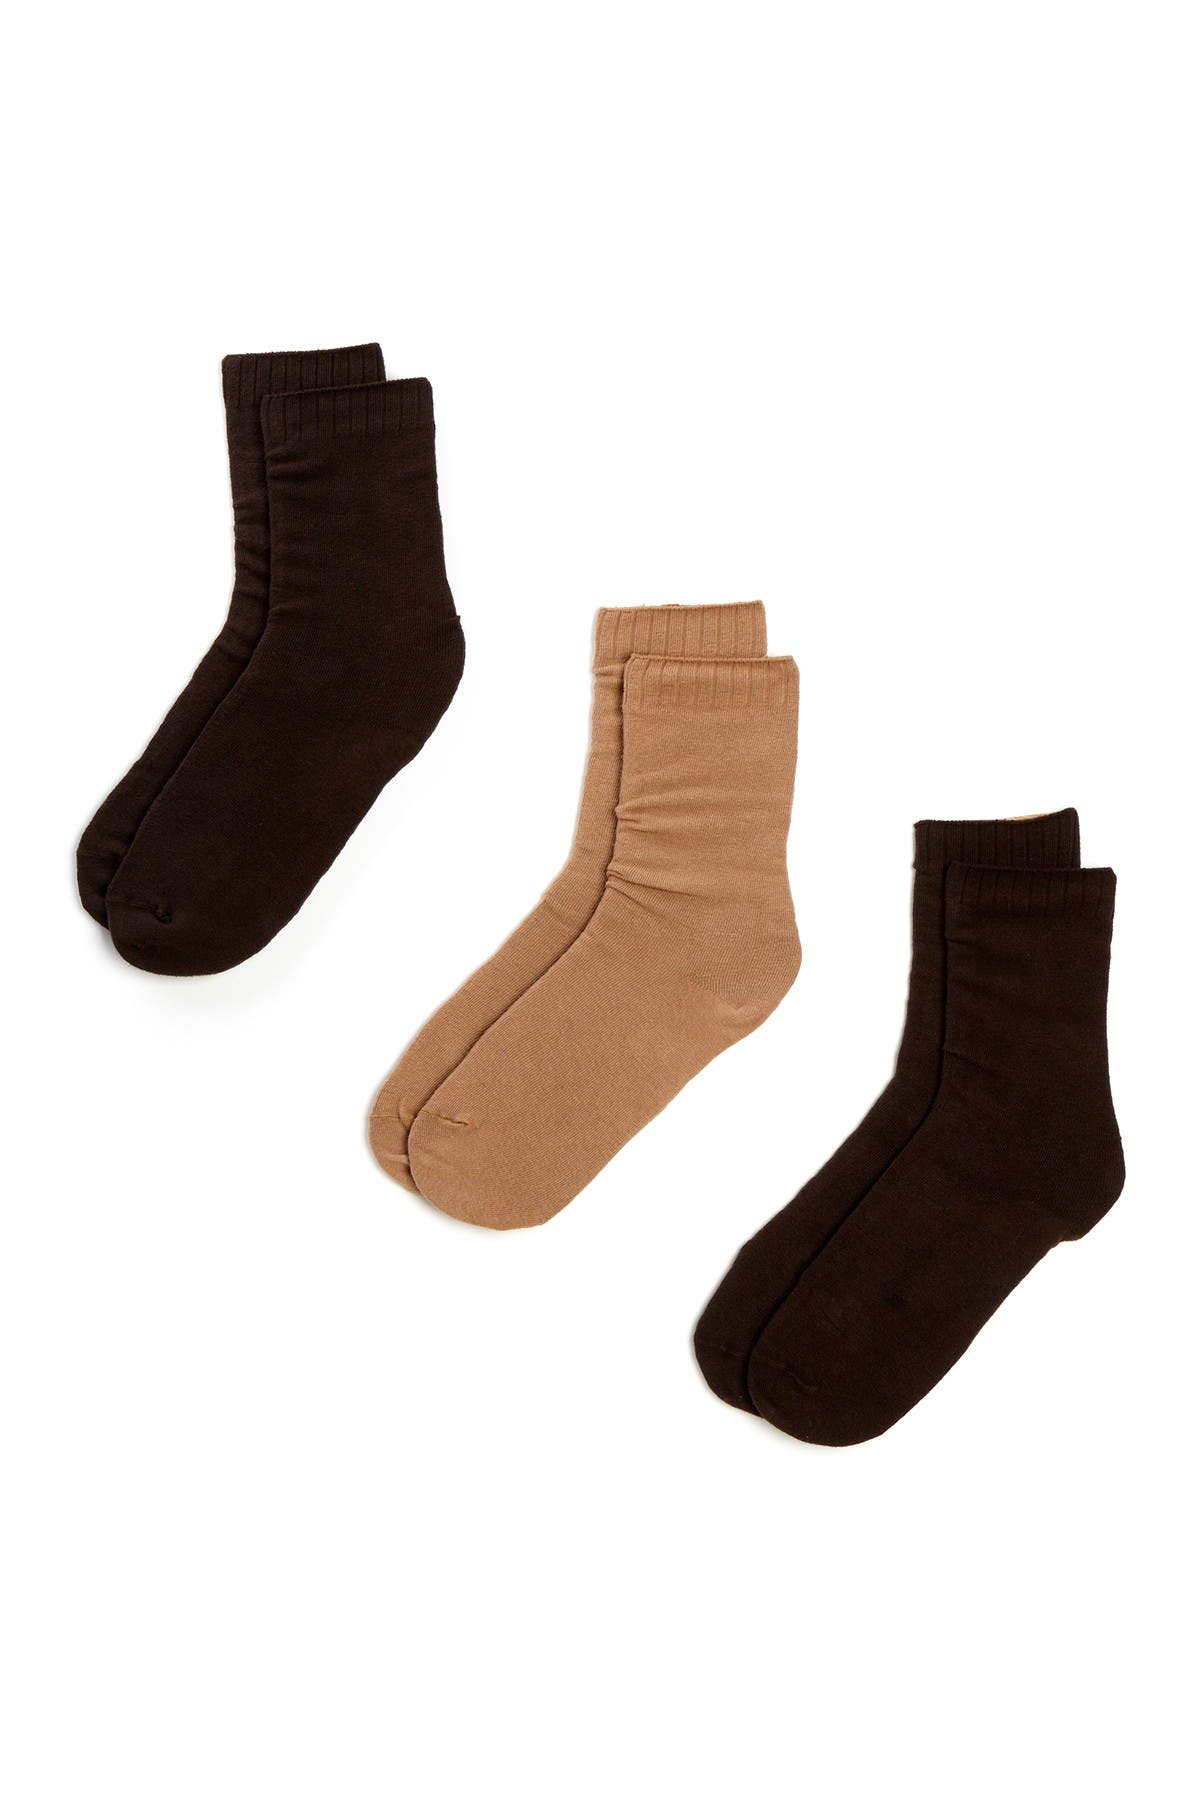 HUE New Loafer Socks - Pack of 3 at Nordstrom Rack